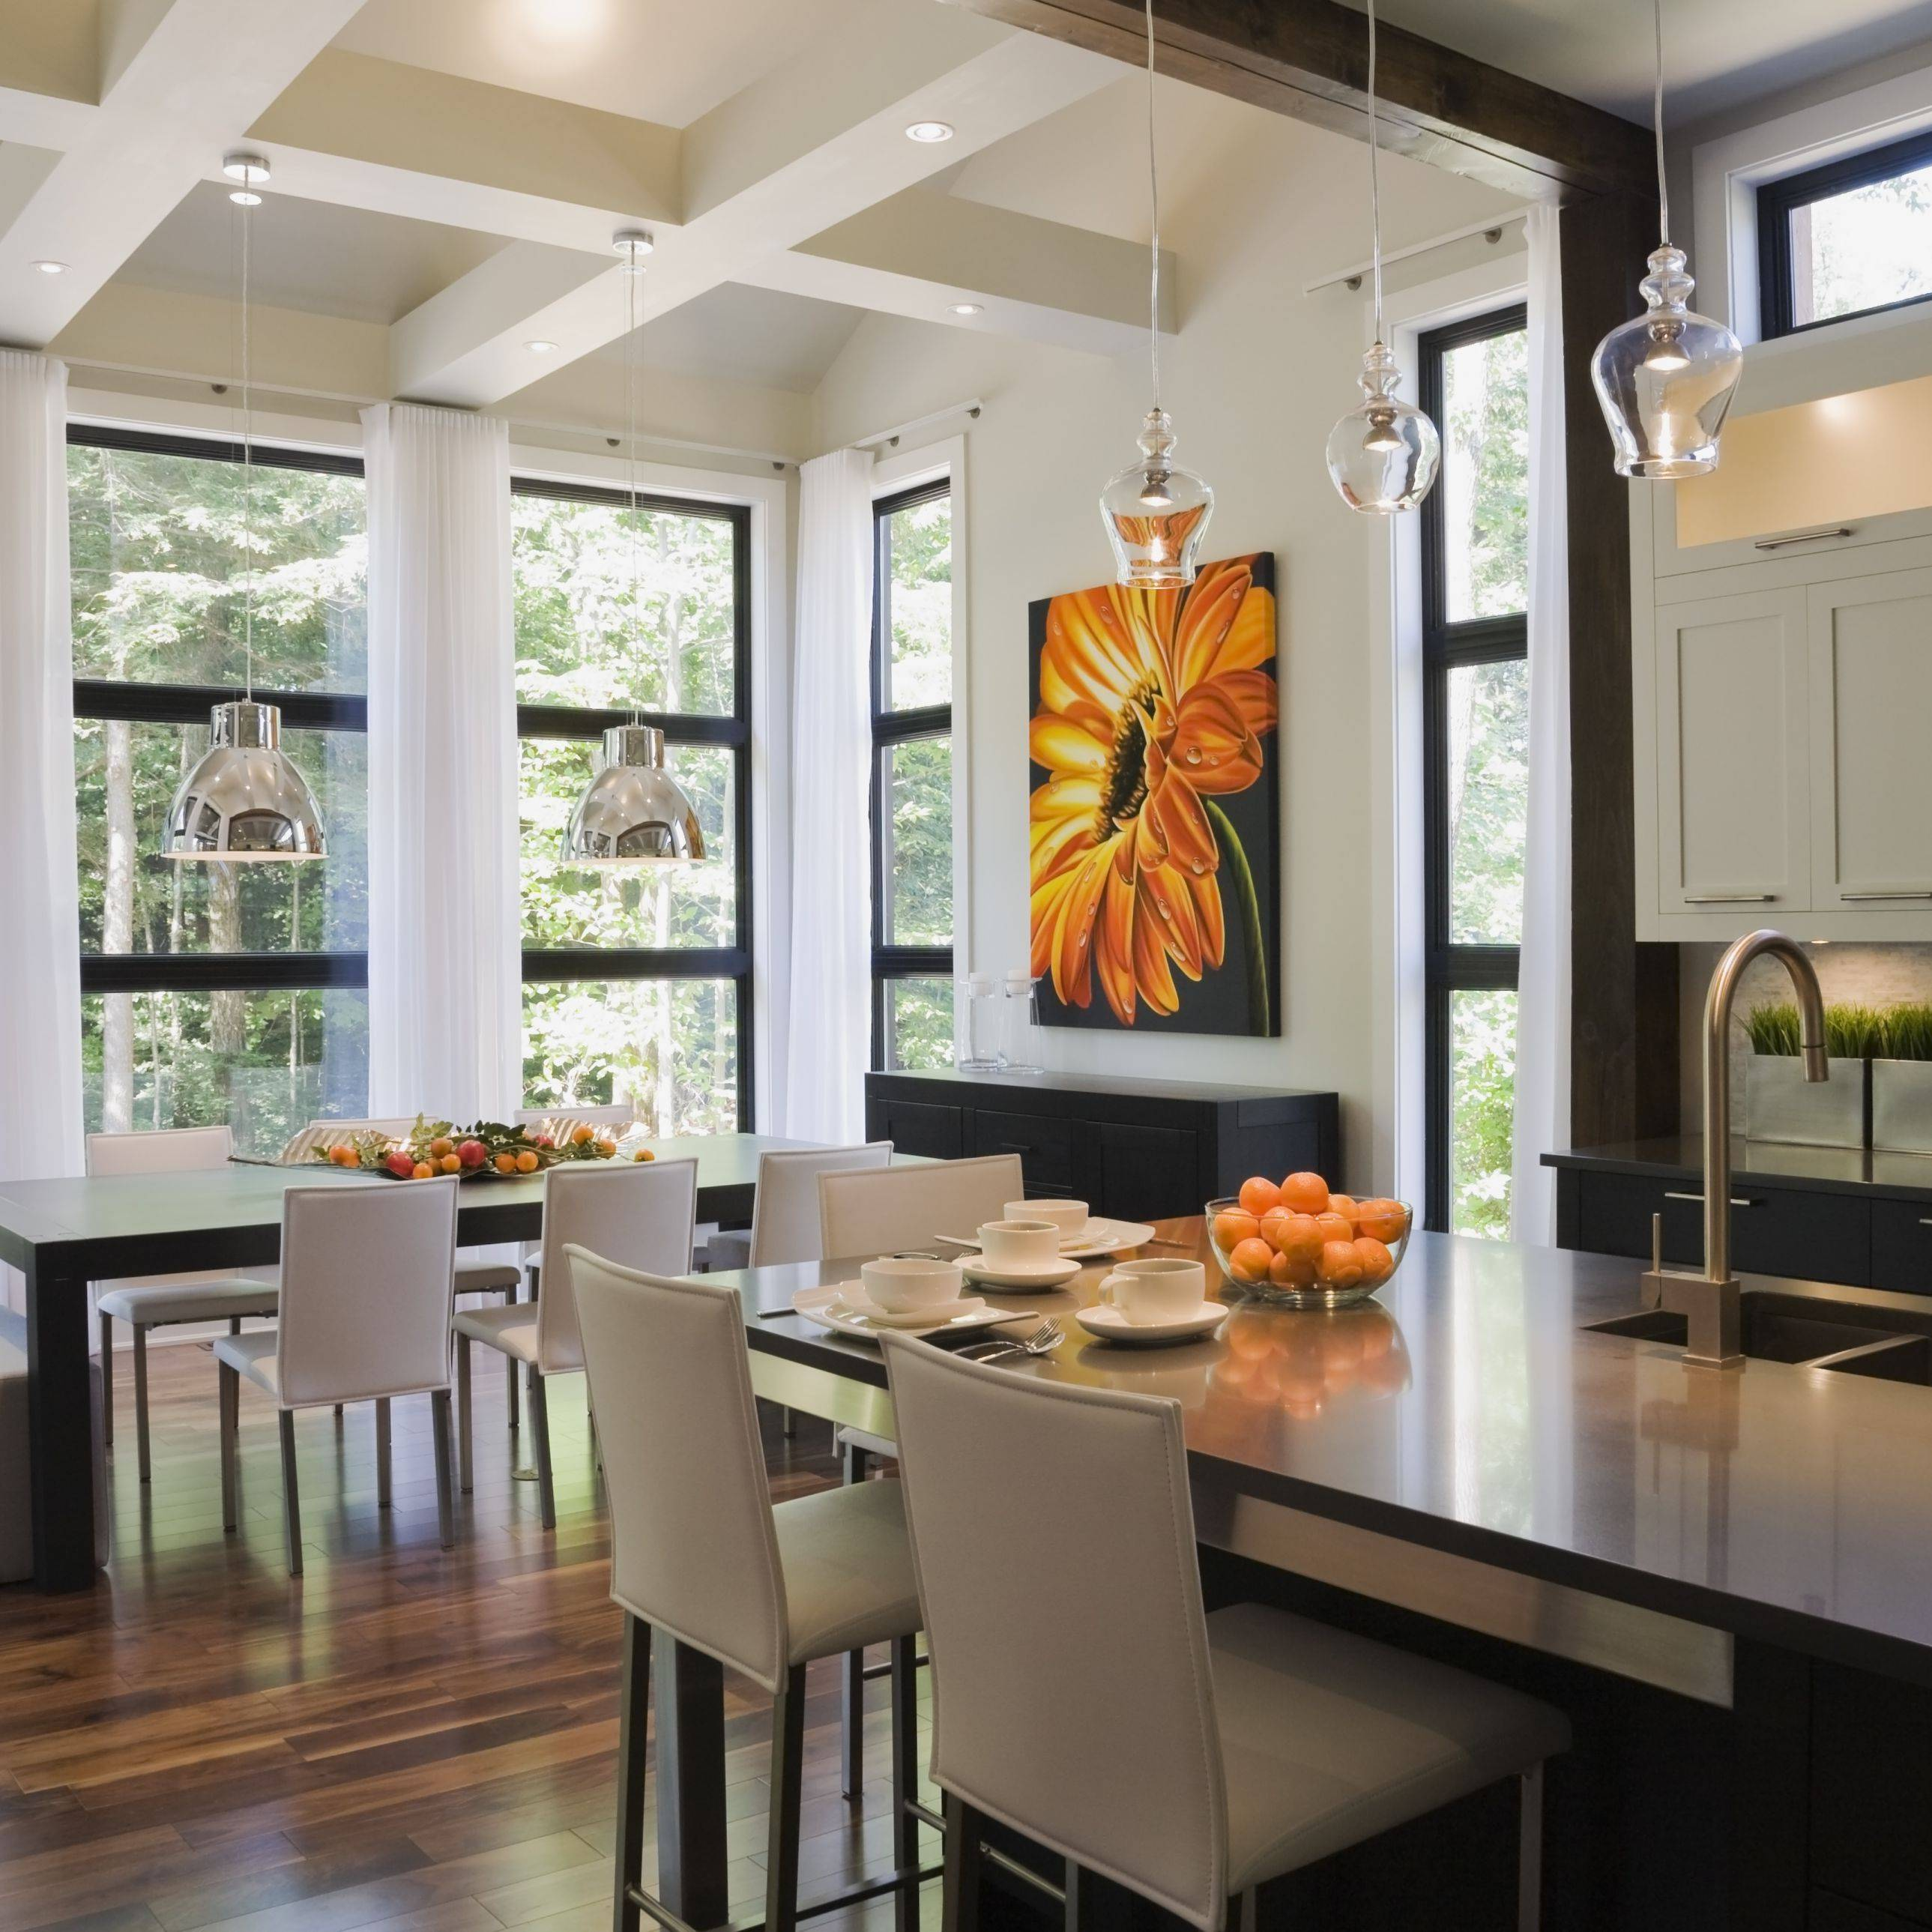 Upscale Kitchen with Wood Floor and Open Beam Ceiling Perry Mastrovito 56a4a16a3df78cf